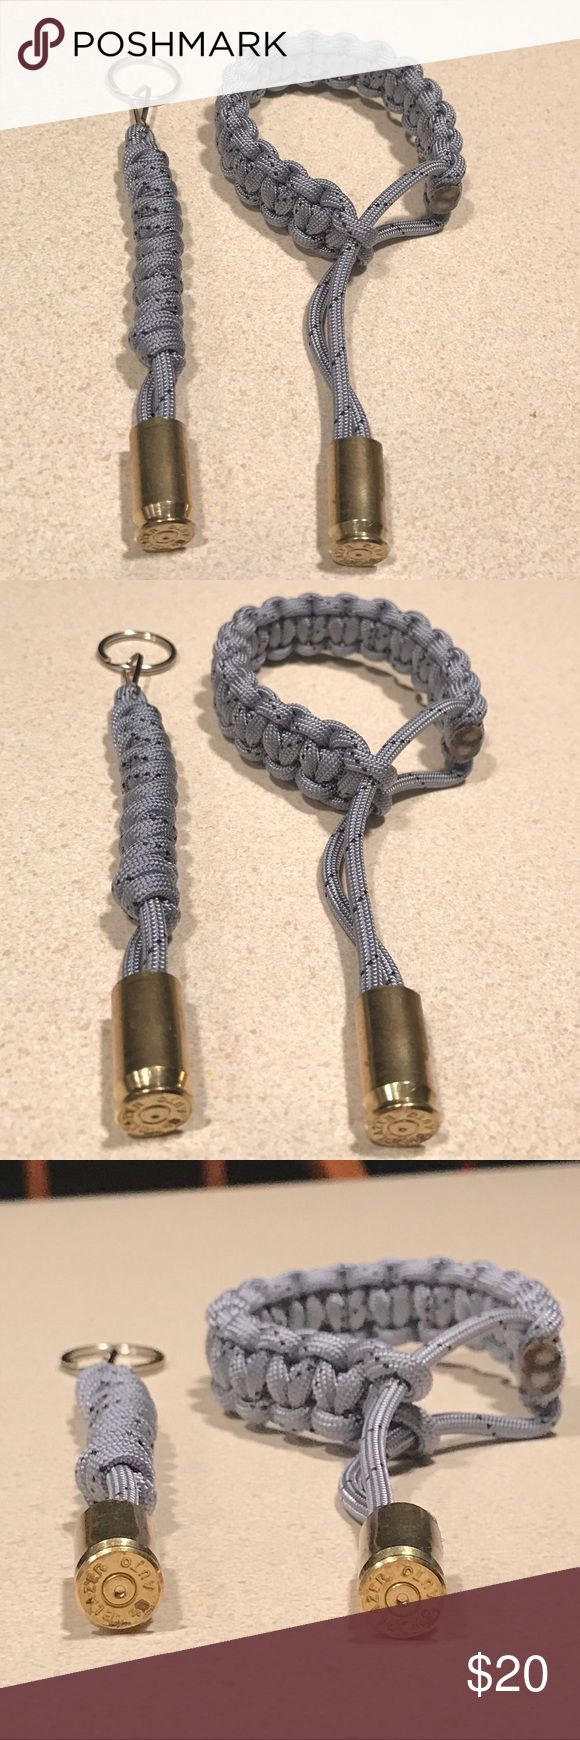 Paracord bullet bracelet & keychain combo! Paracord bullet bracelet & keychain combo- 550 paracord with .40 caliber bullet casings shot by me and made by me! Bracelet is adjustable! Midnight Man Craft Accessories Jewelry